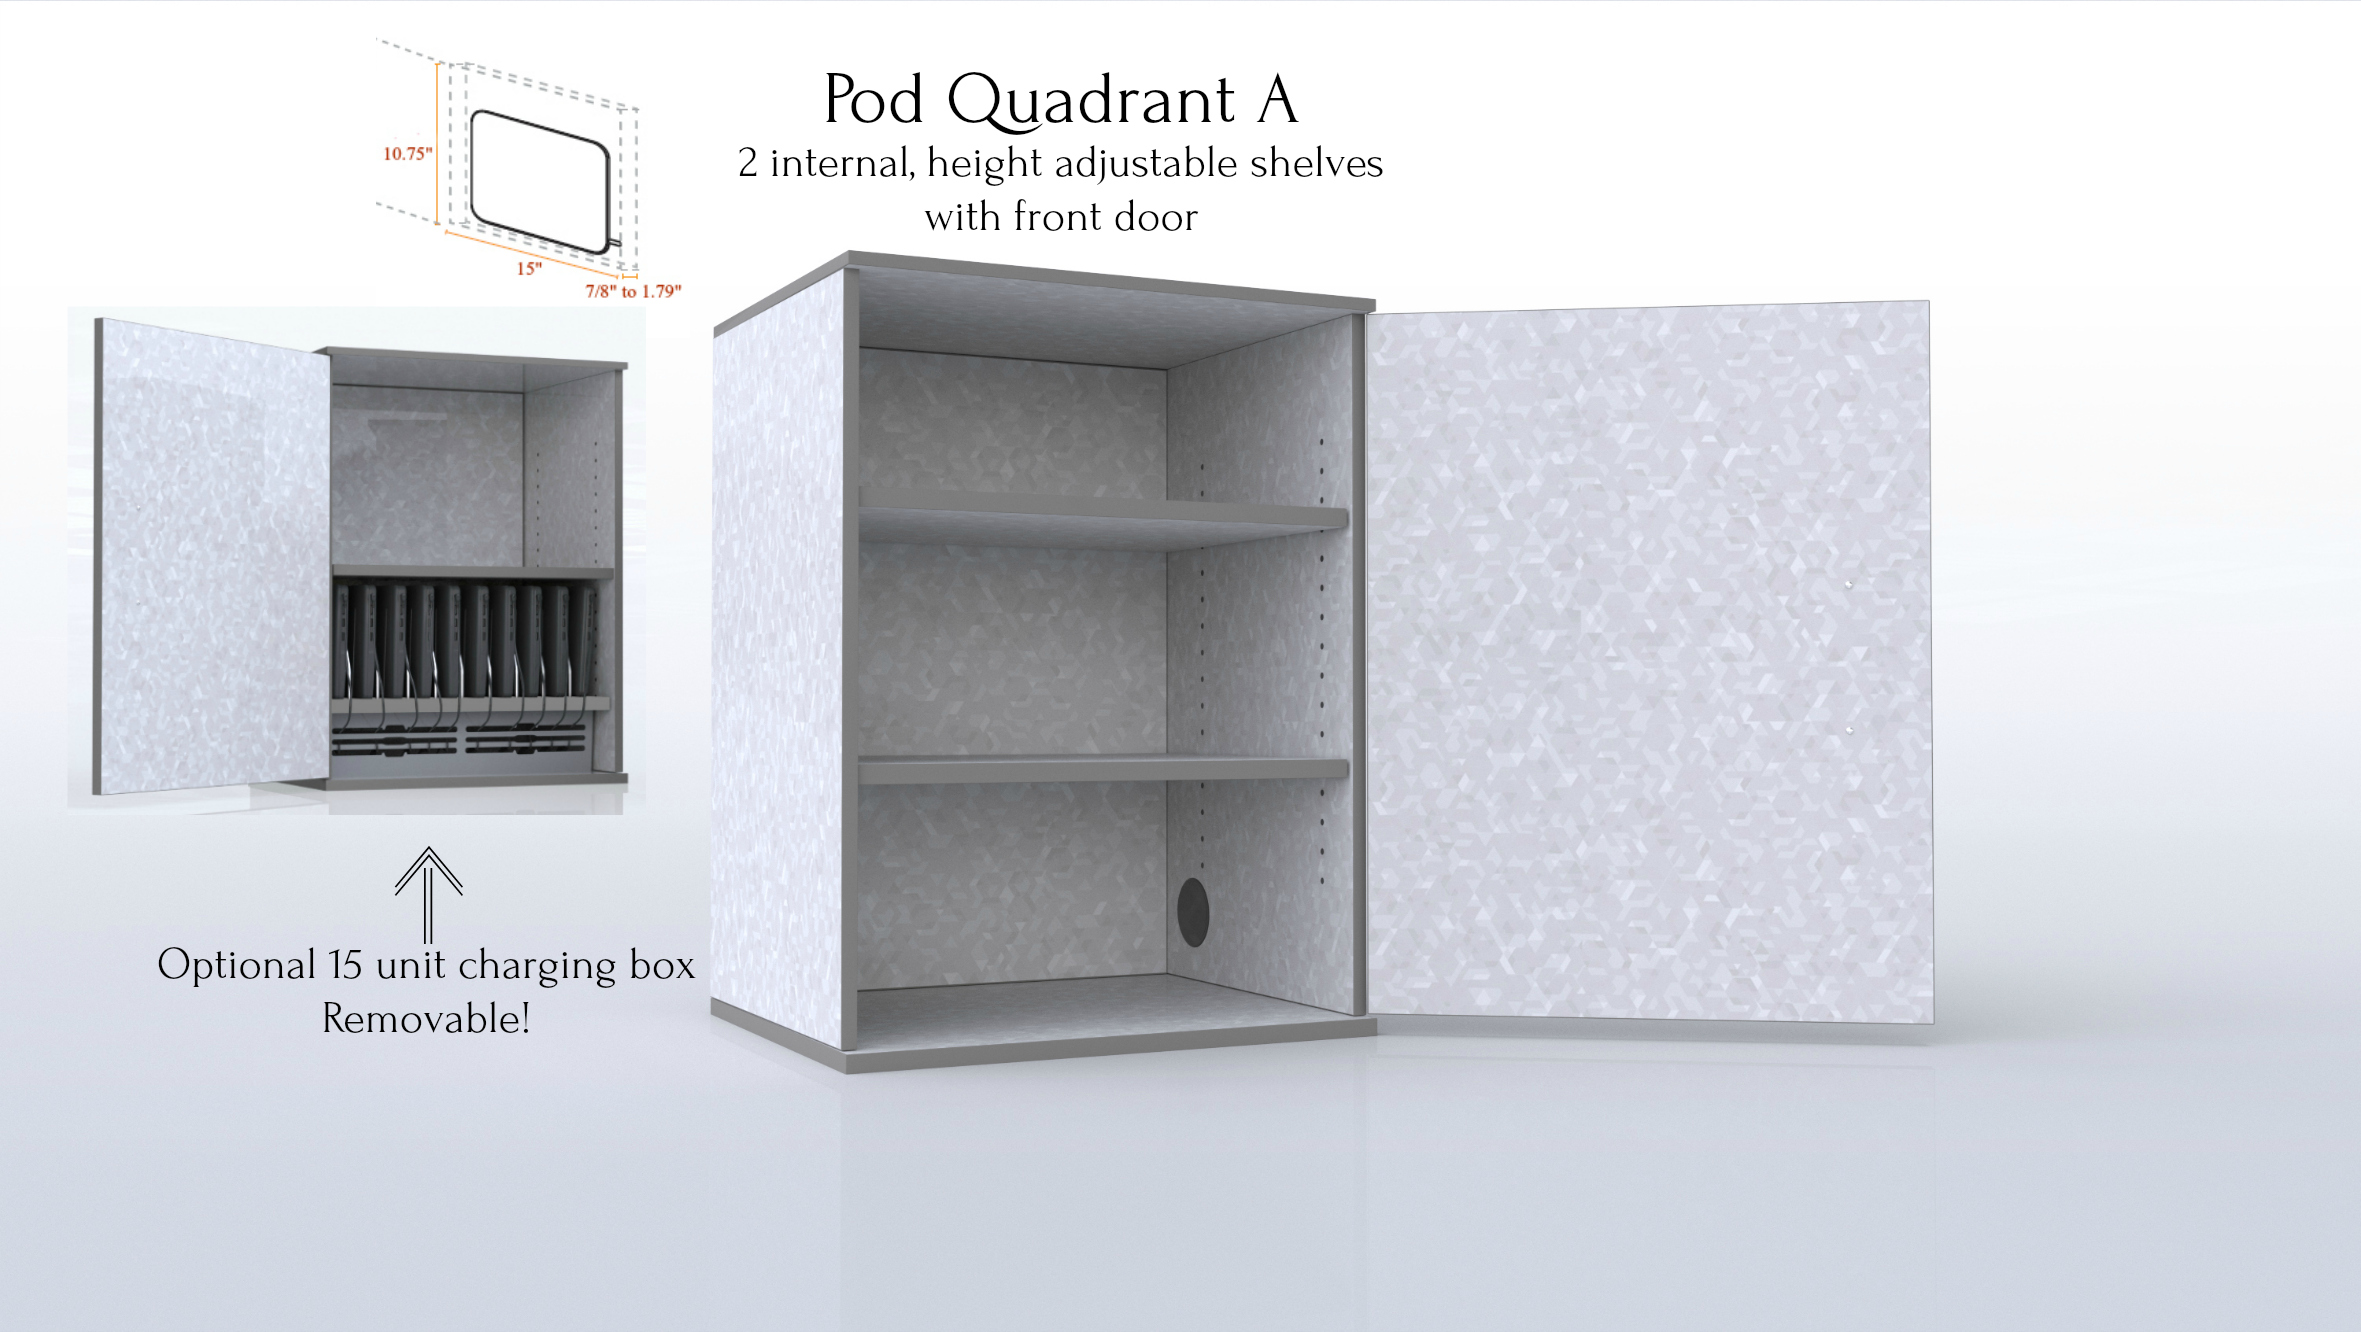 CEF Pod Quadrant A with Optional Charging Box plus device dimensions.jpg